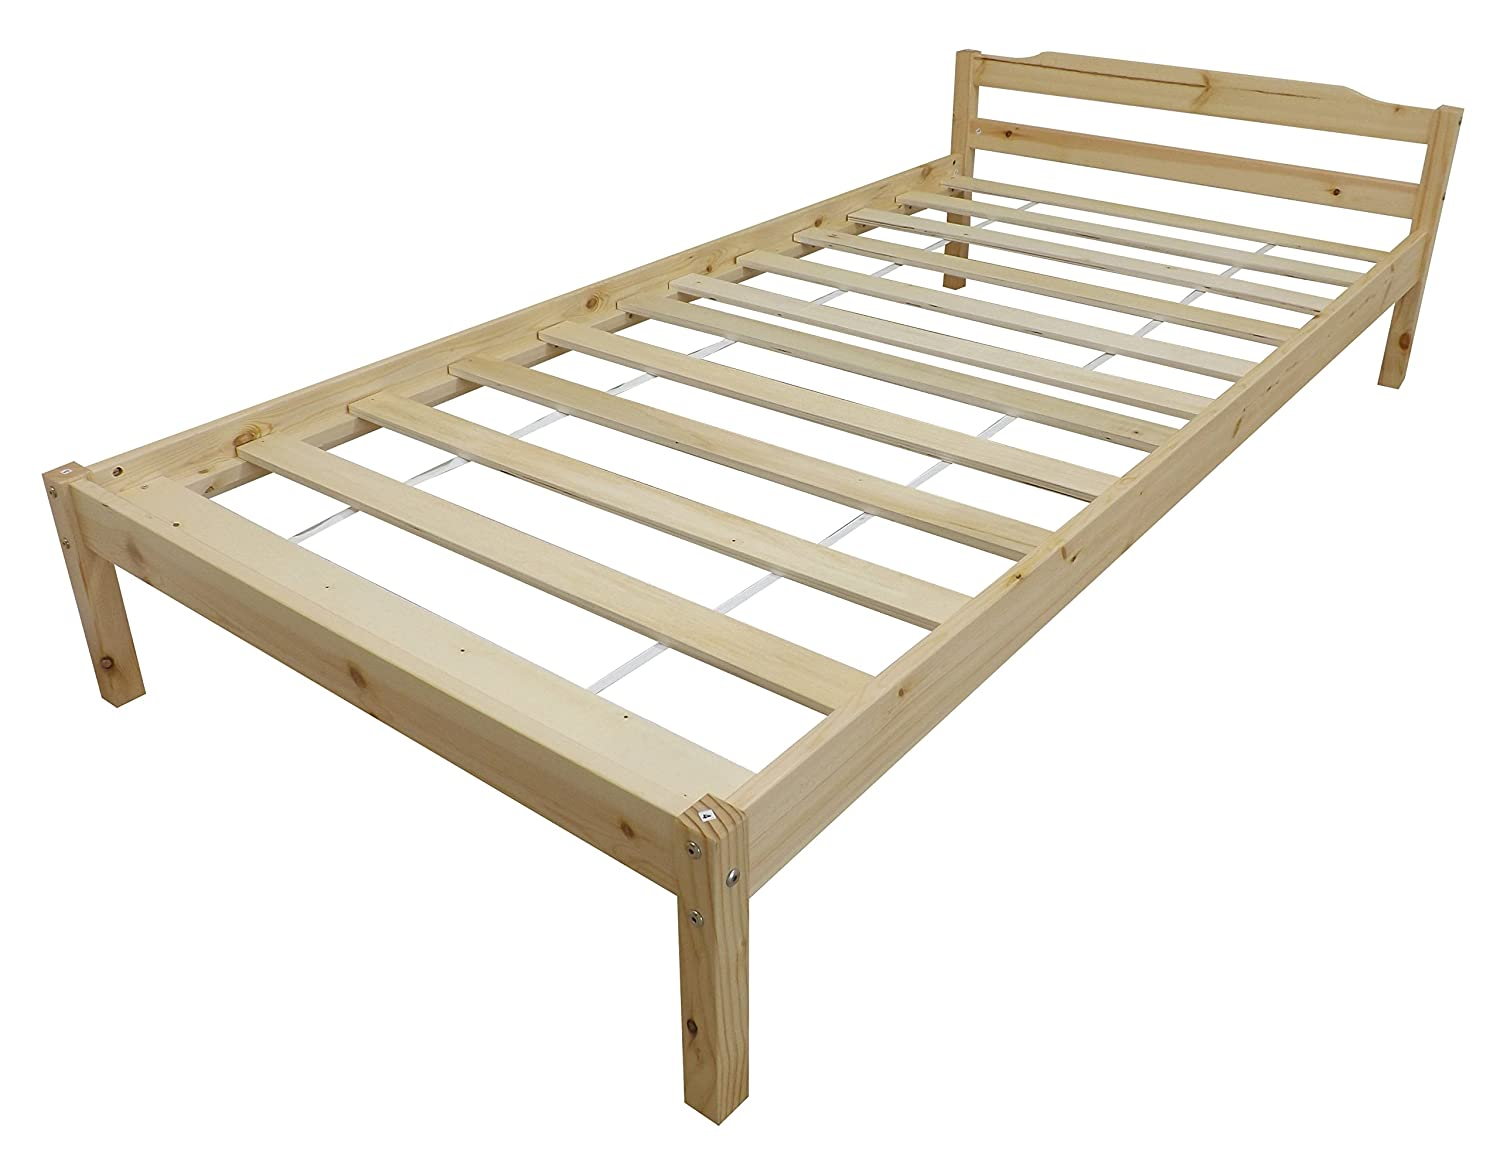 Kidsaw Pine Single Bed with Varnish, 65 x 97 x 198 cm, Natural K0020